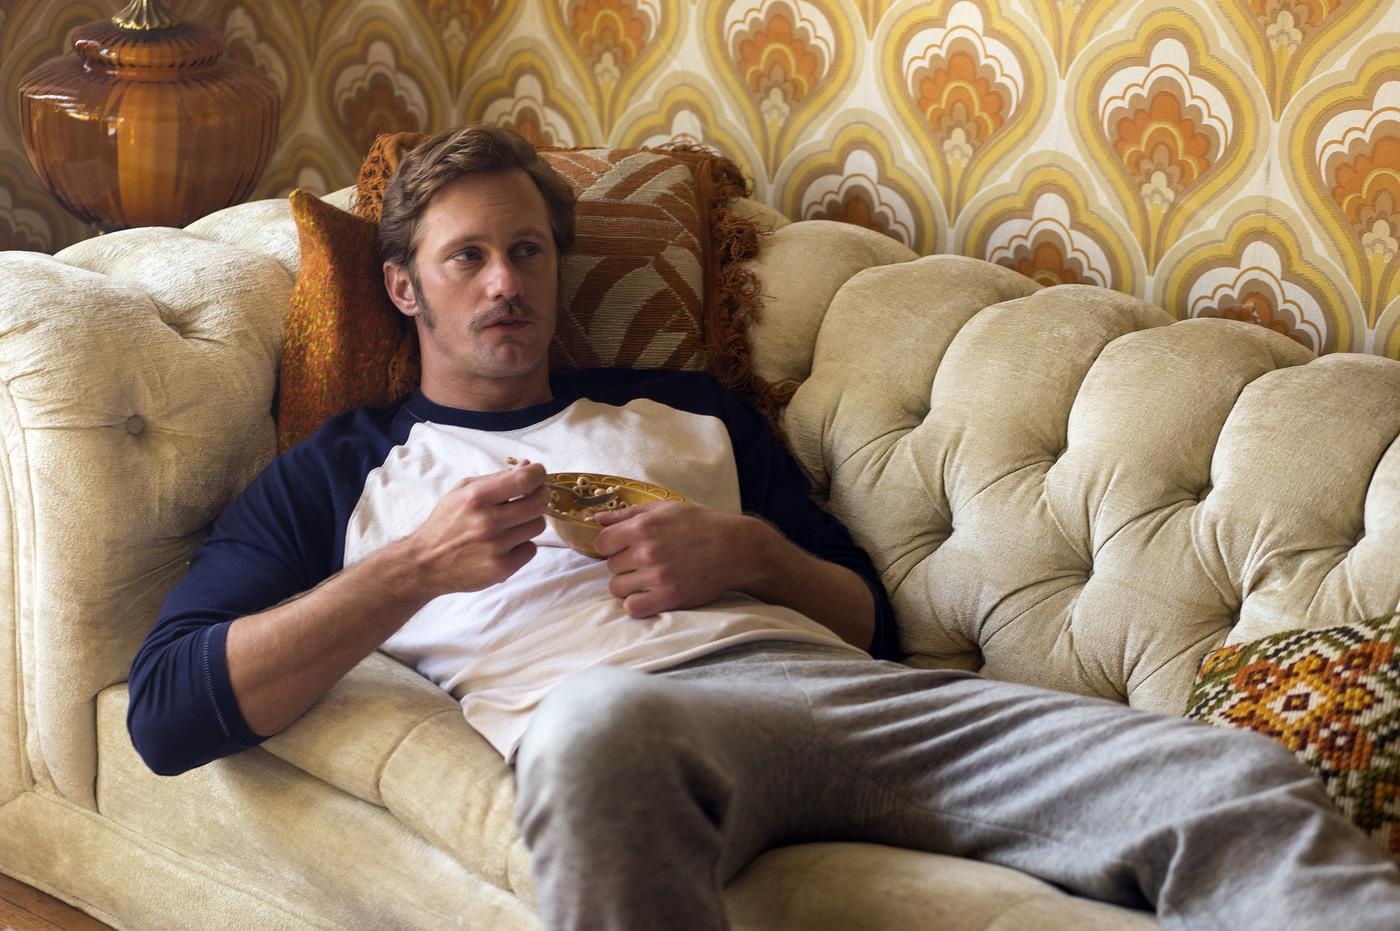 The Diary of a Teenage Girl star Alexander Skarsgard: Sex scenes are never uncomfortable for me